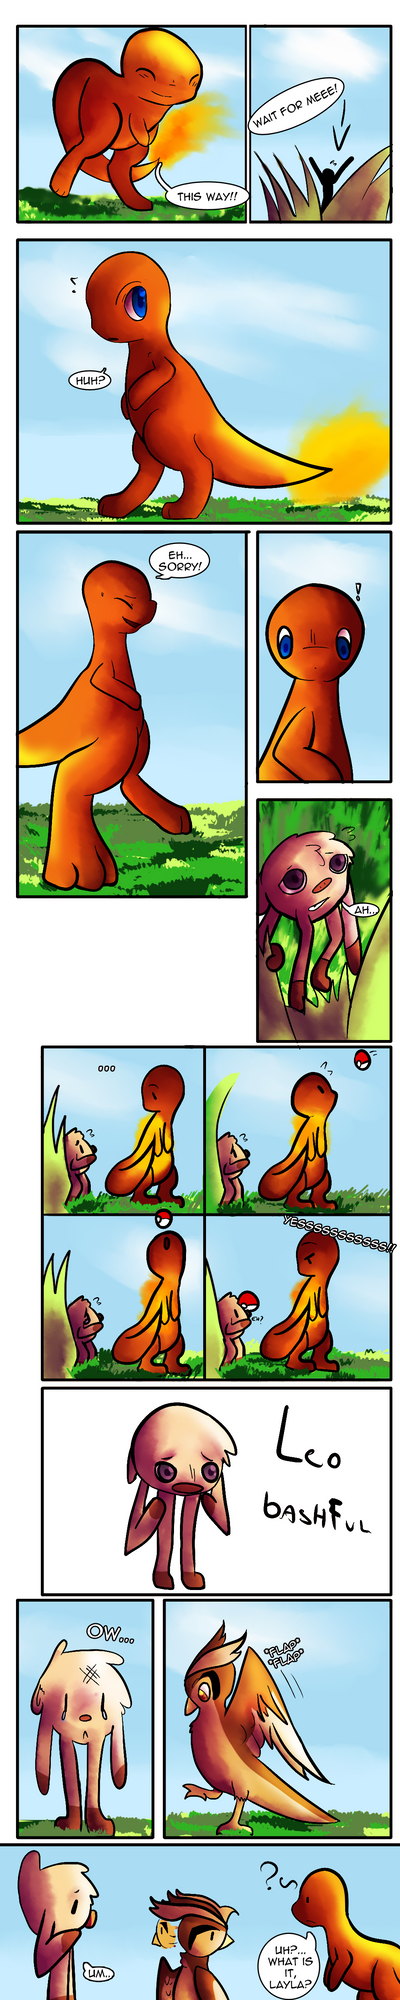 POKEMMO/Pokemon Fire red Nuzlocke challenge/page 6 by